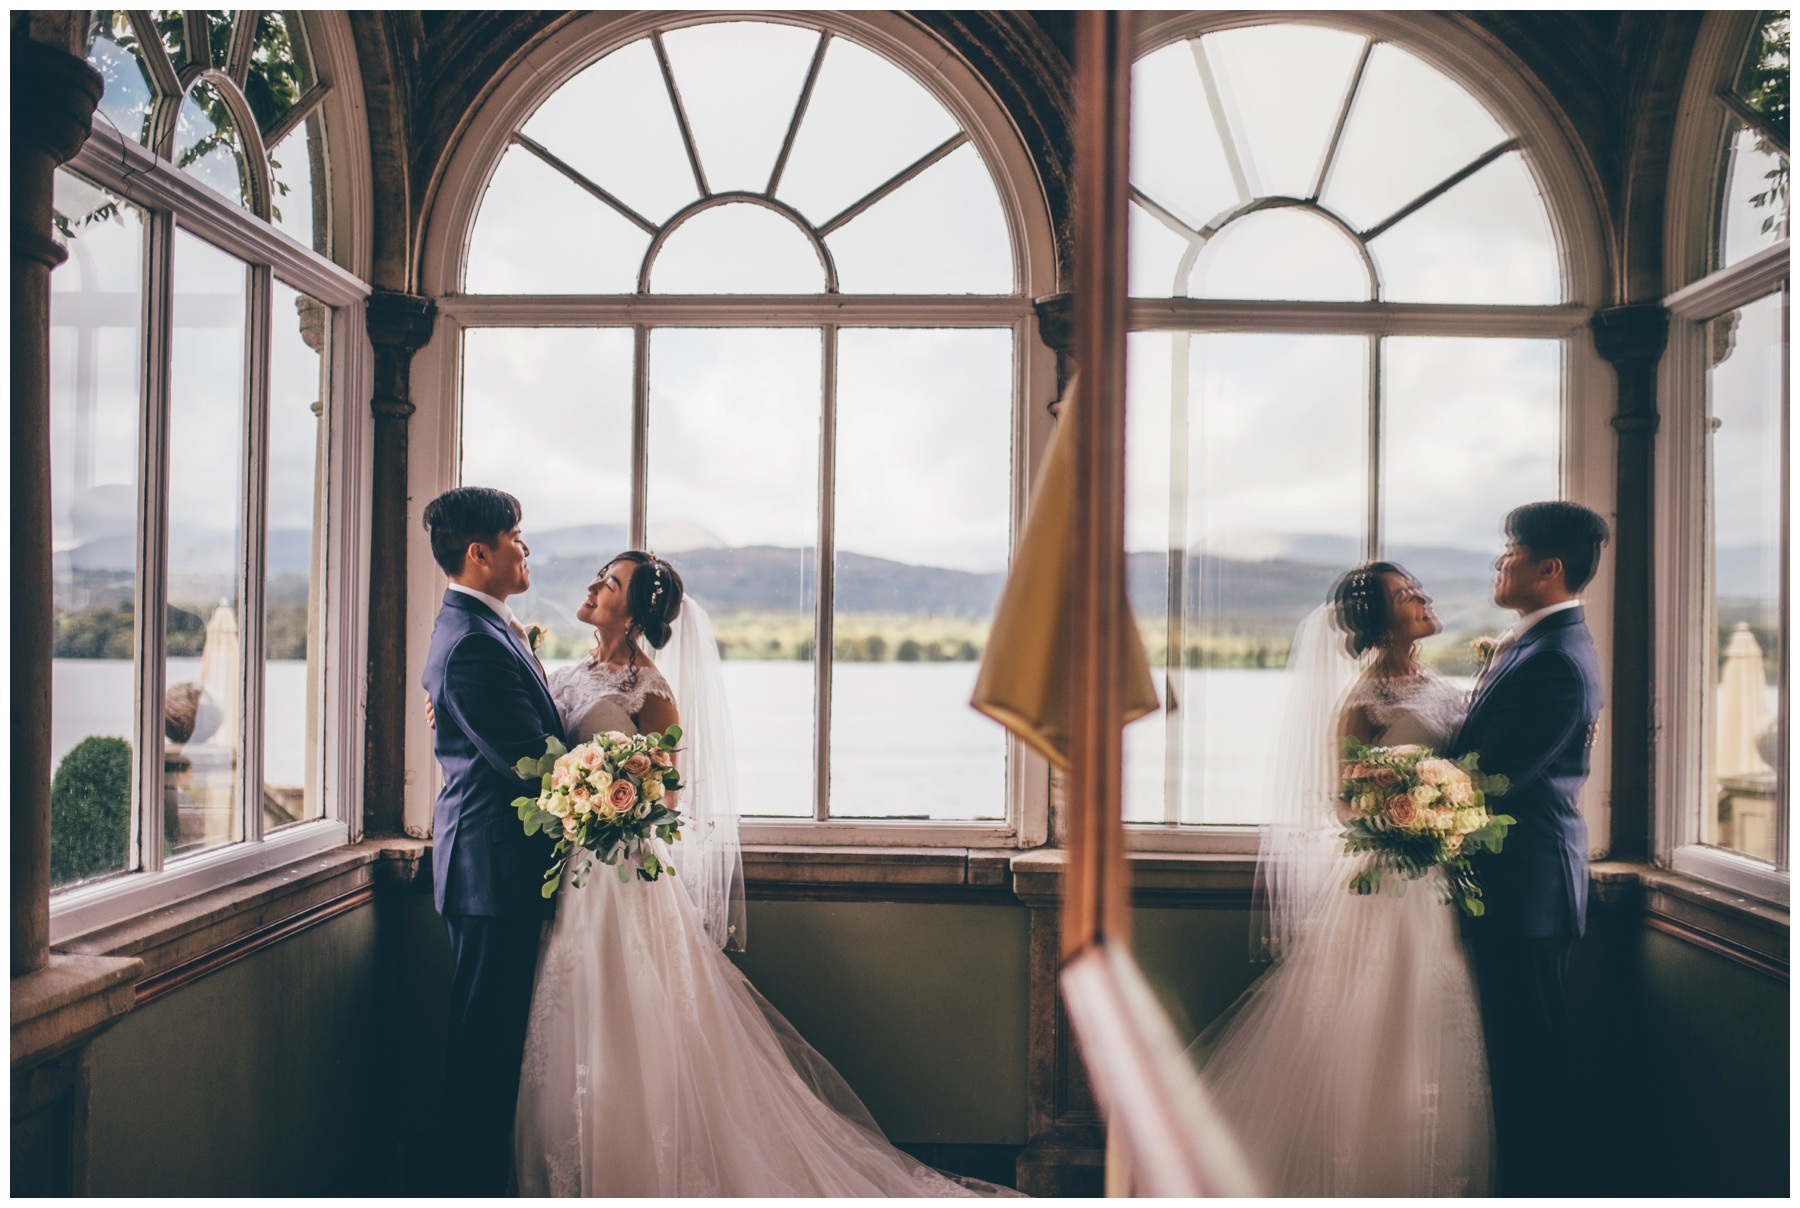 Bride and groom in the conservatory at Langdale Chase Hotel in the Lake District.